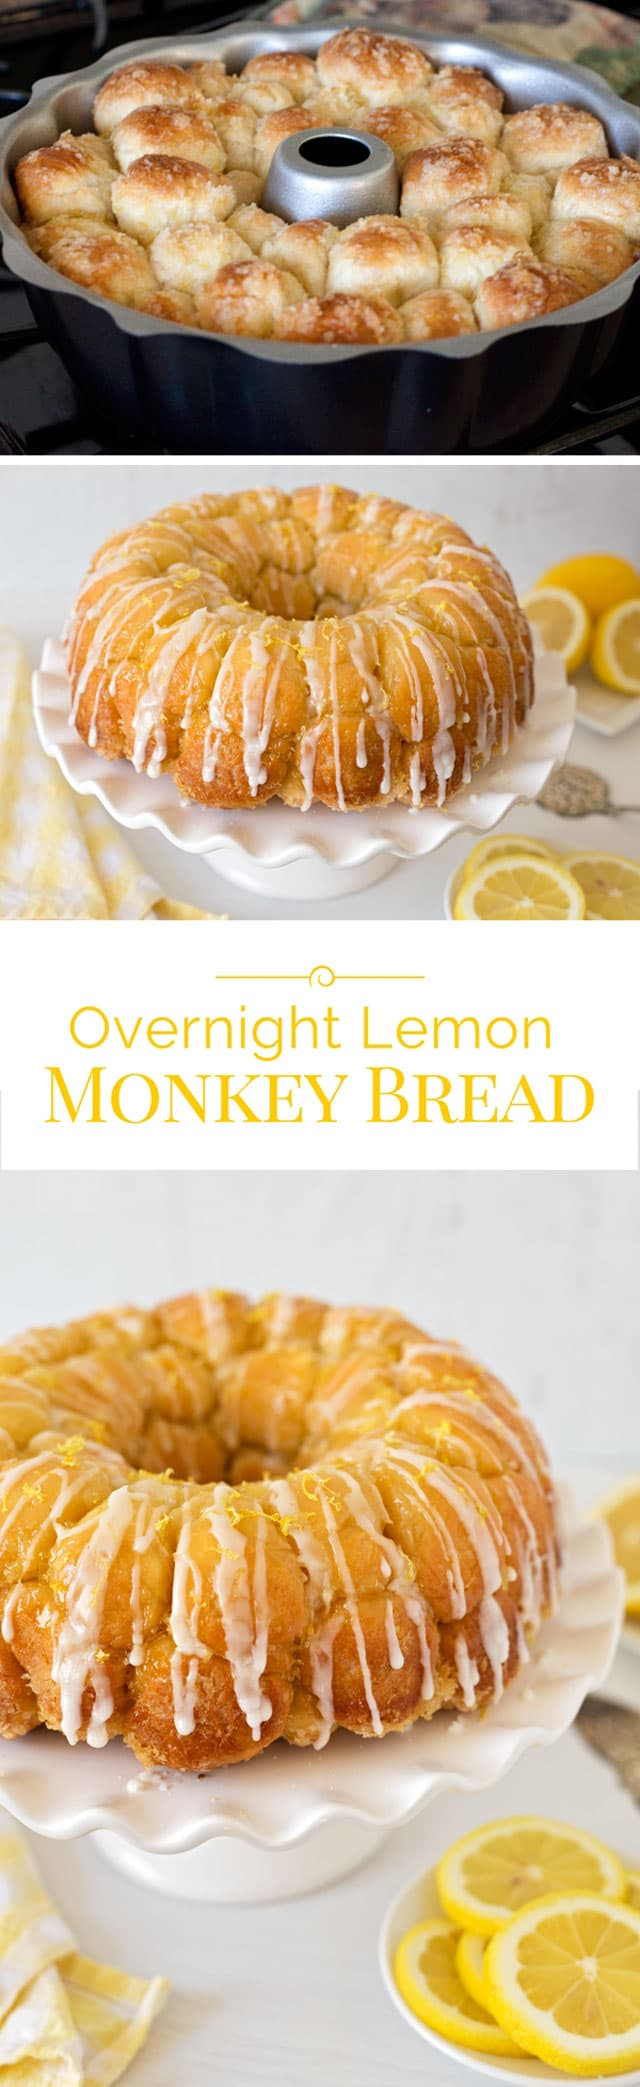 Overnight-Lemon-Monkey-Bread-Collage-3-Barbara-Bakes